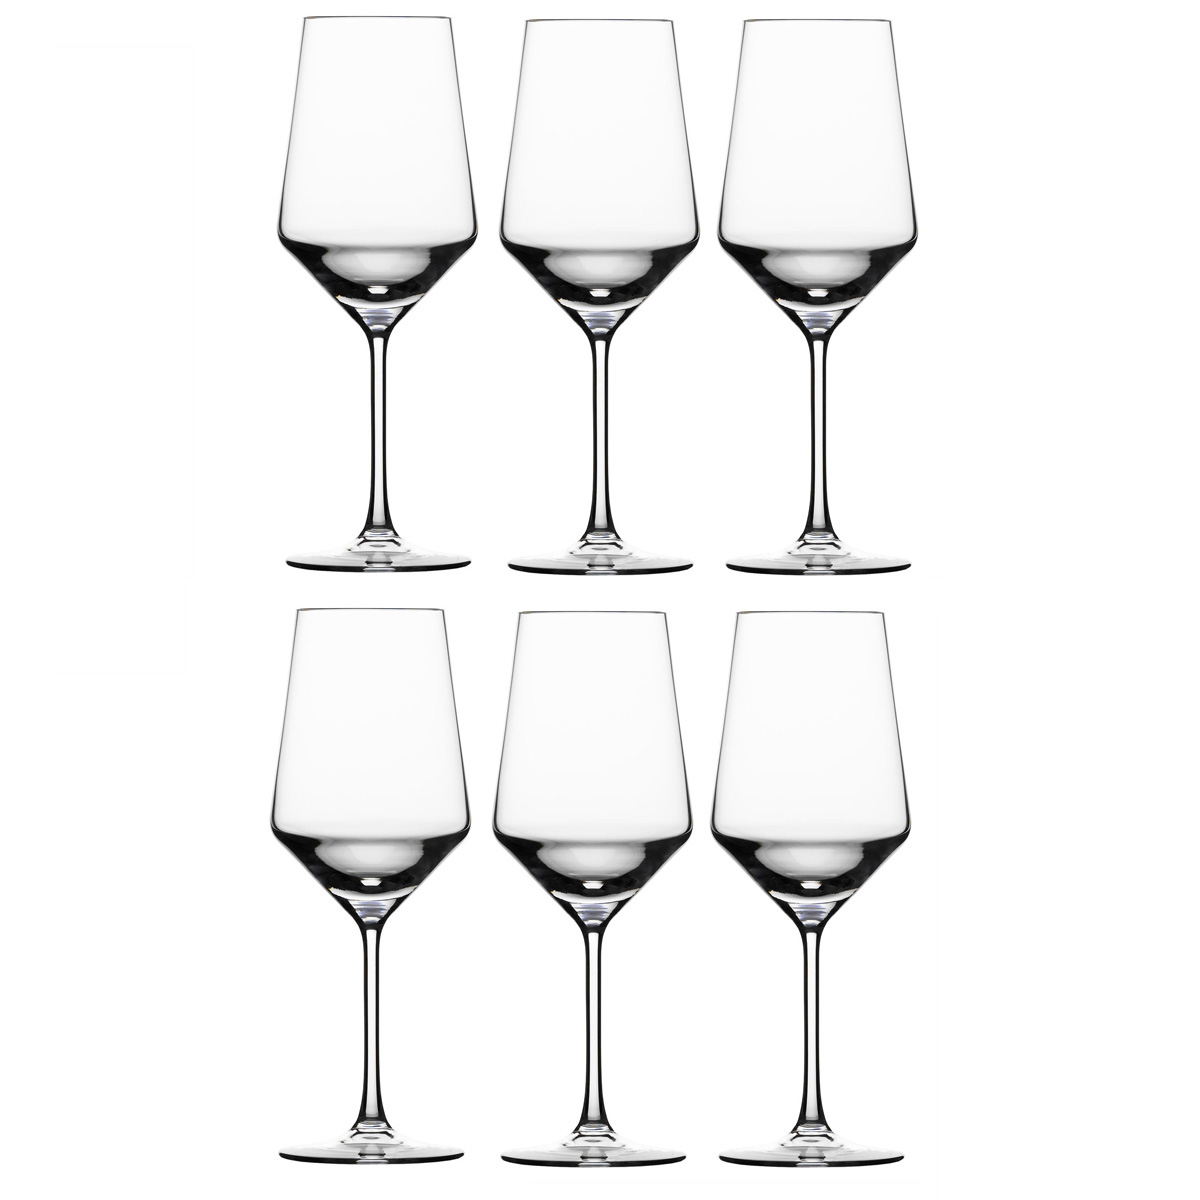 Schott Zwiesel Pure Cabernet Set of 6 Glasses - Special